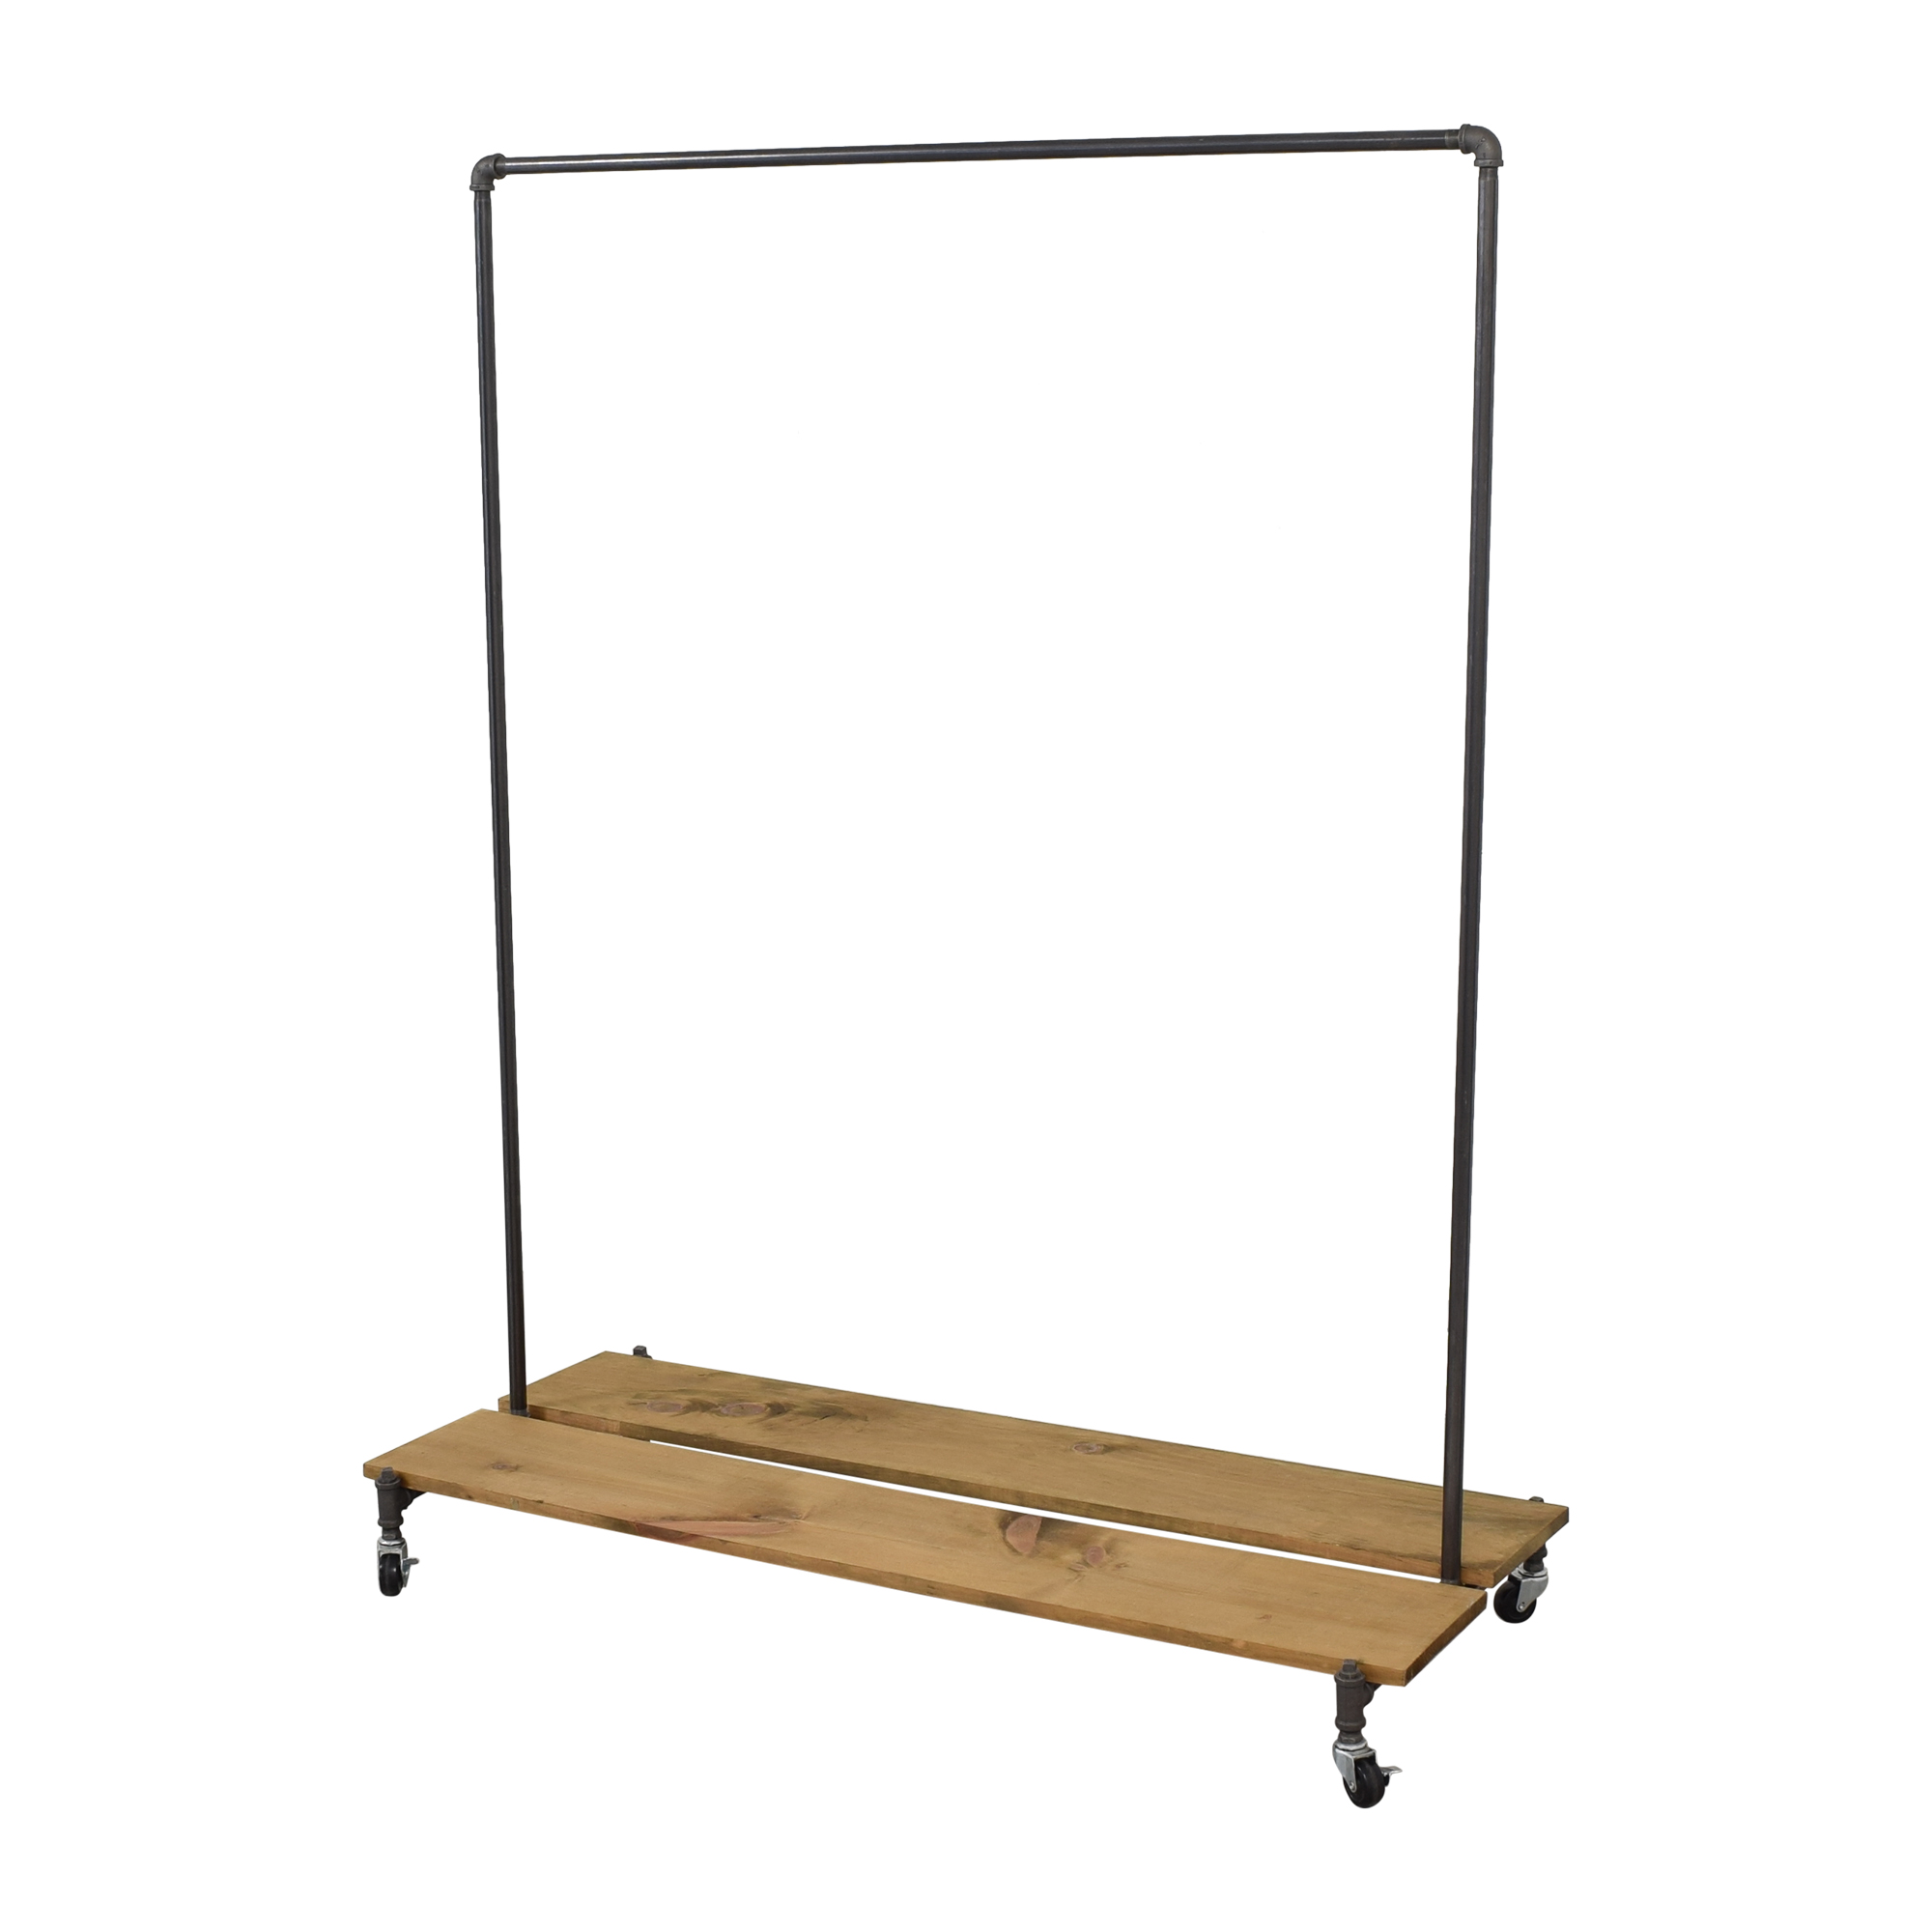 Monroe Trades Clothing Rack for sale